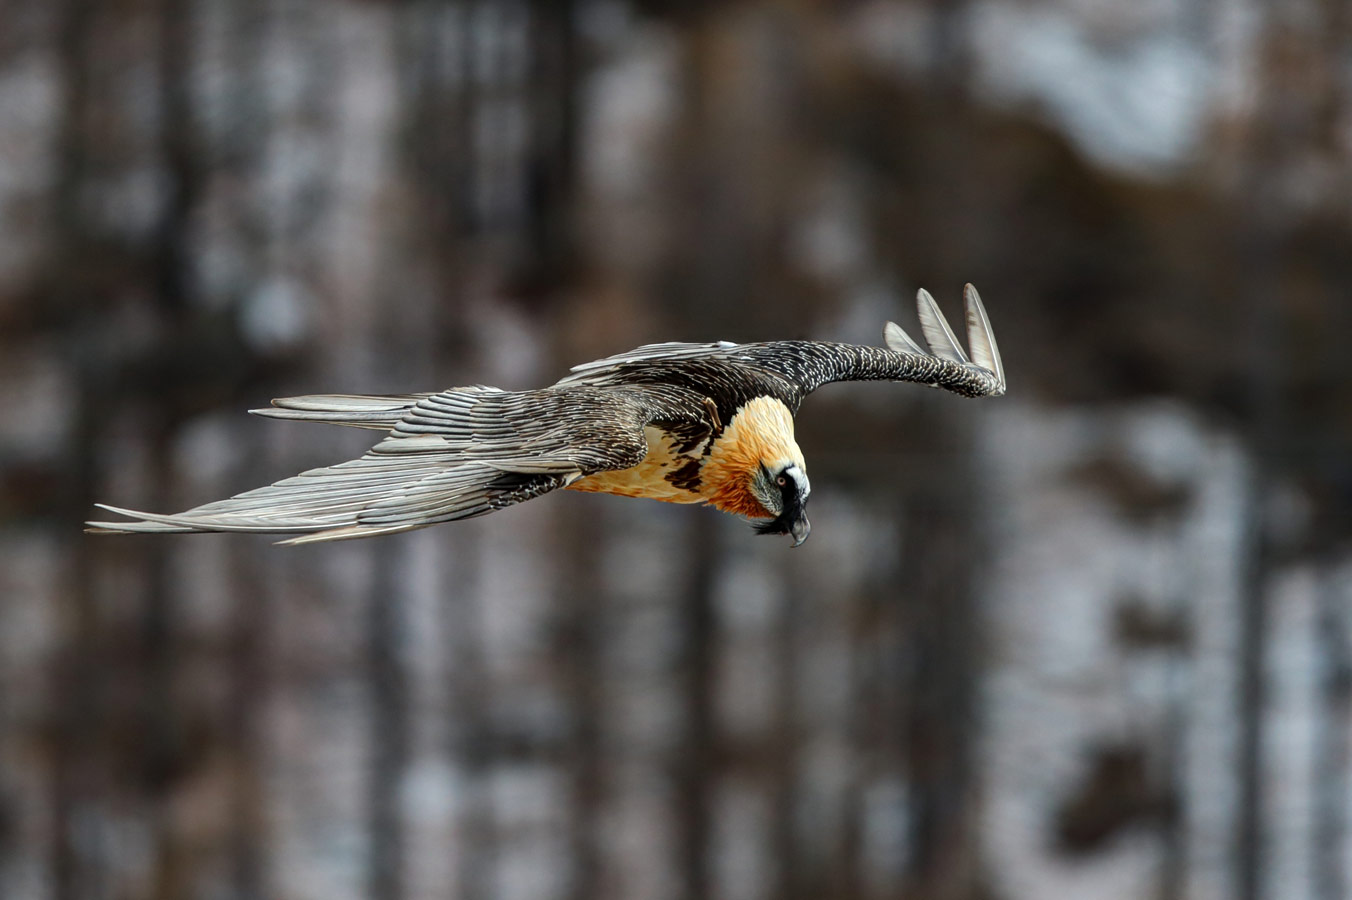 Gypaetus barbatus in flight. Gran Paradiso National Park, Italy, © Luca Casale, 11 place, Wiki Loves Earth Photo Contest